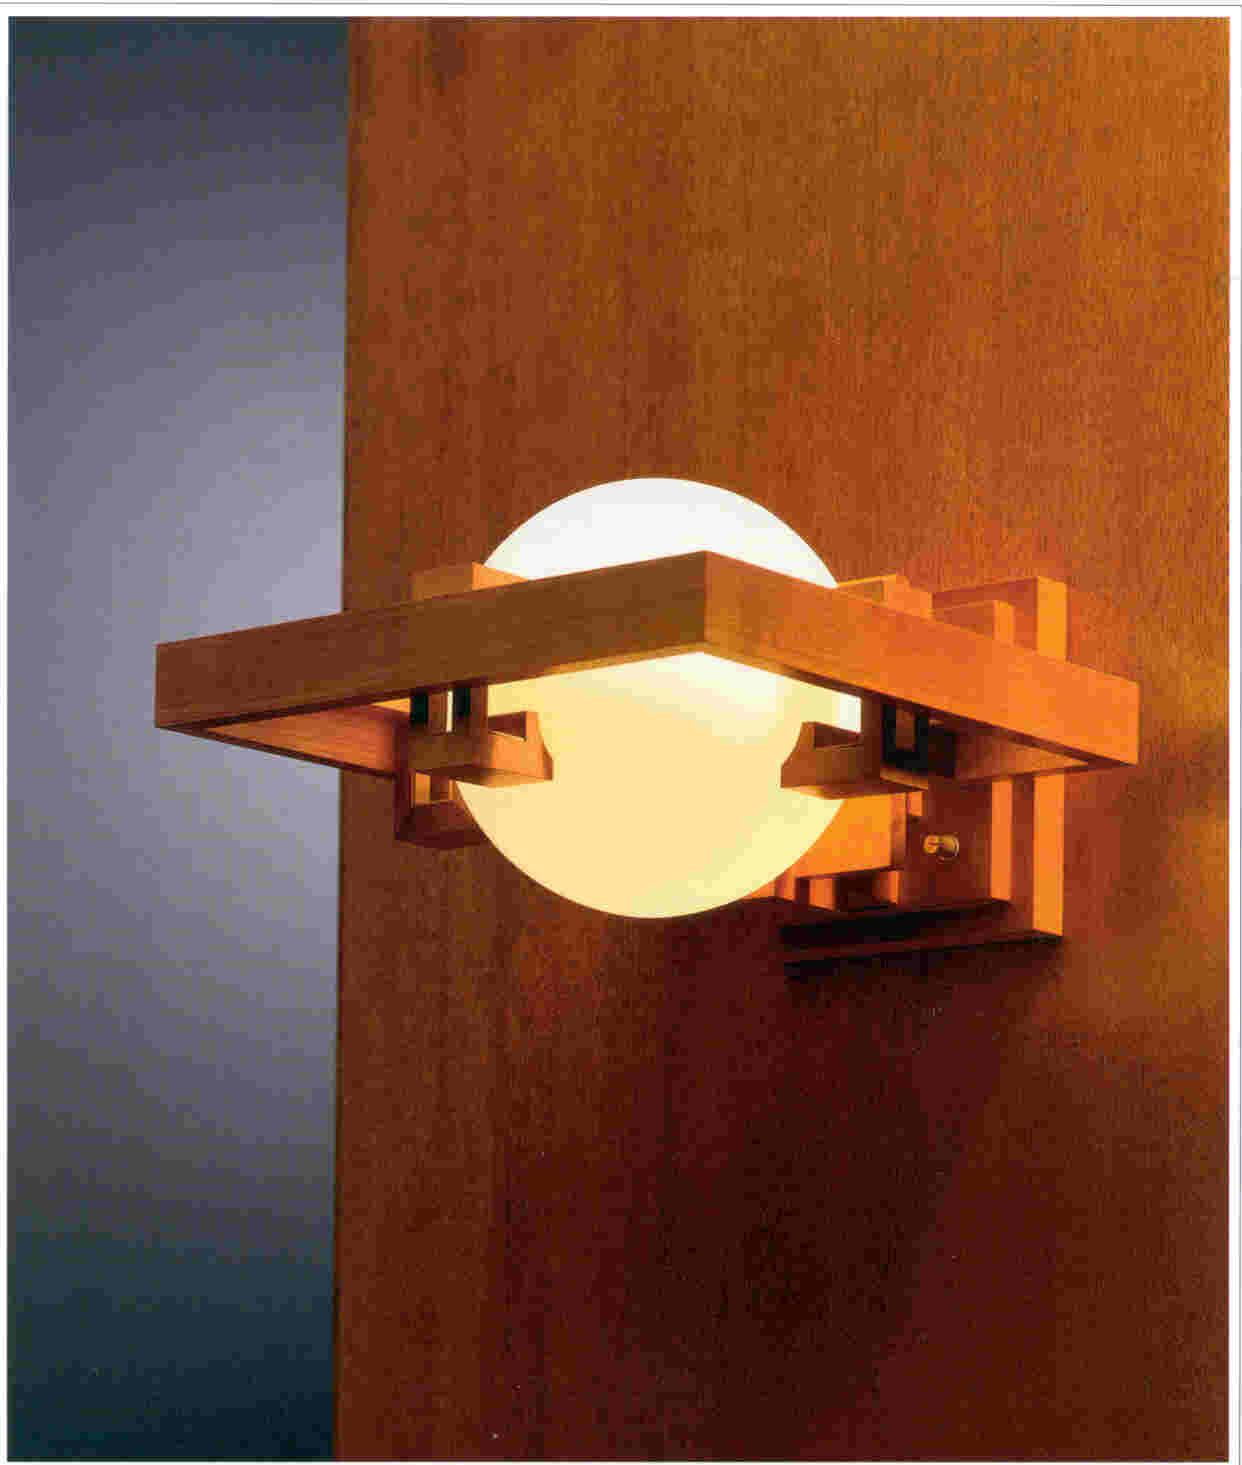 frank lloyd wright wall sconce designed for the robie house